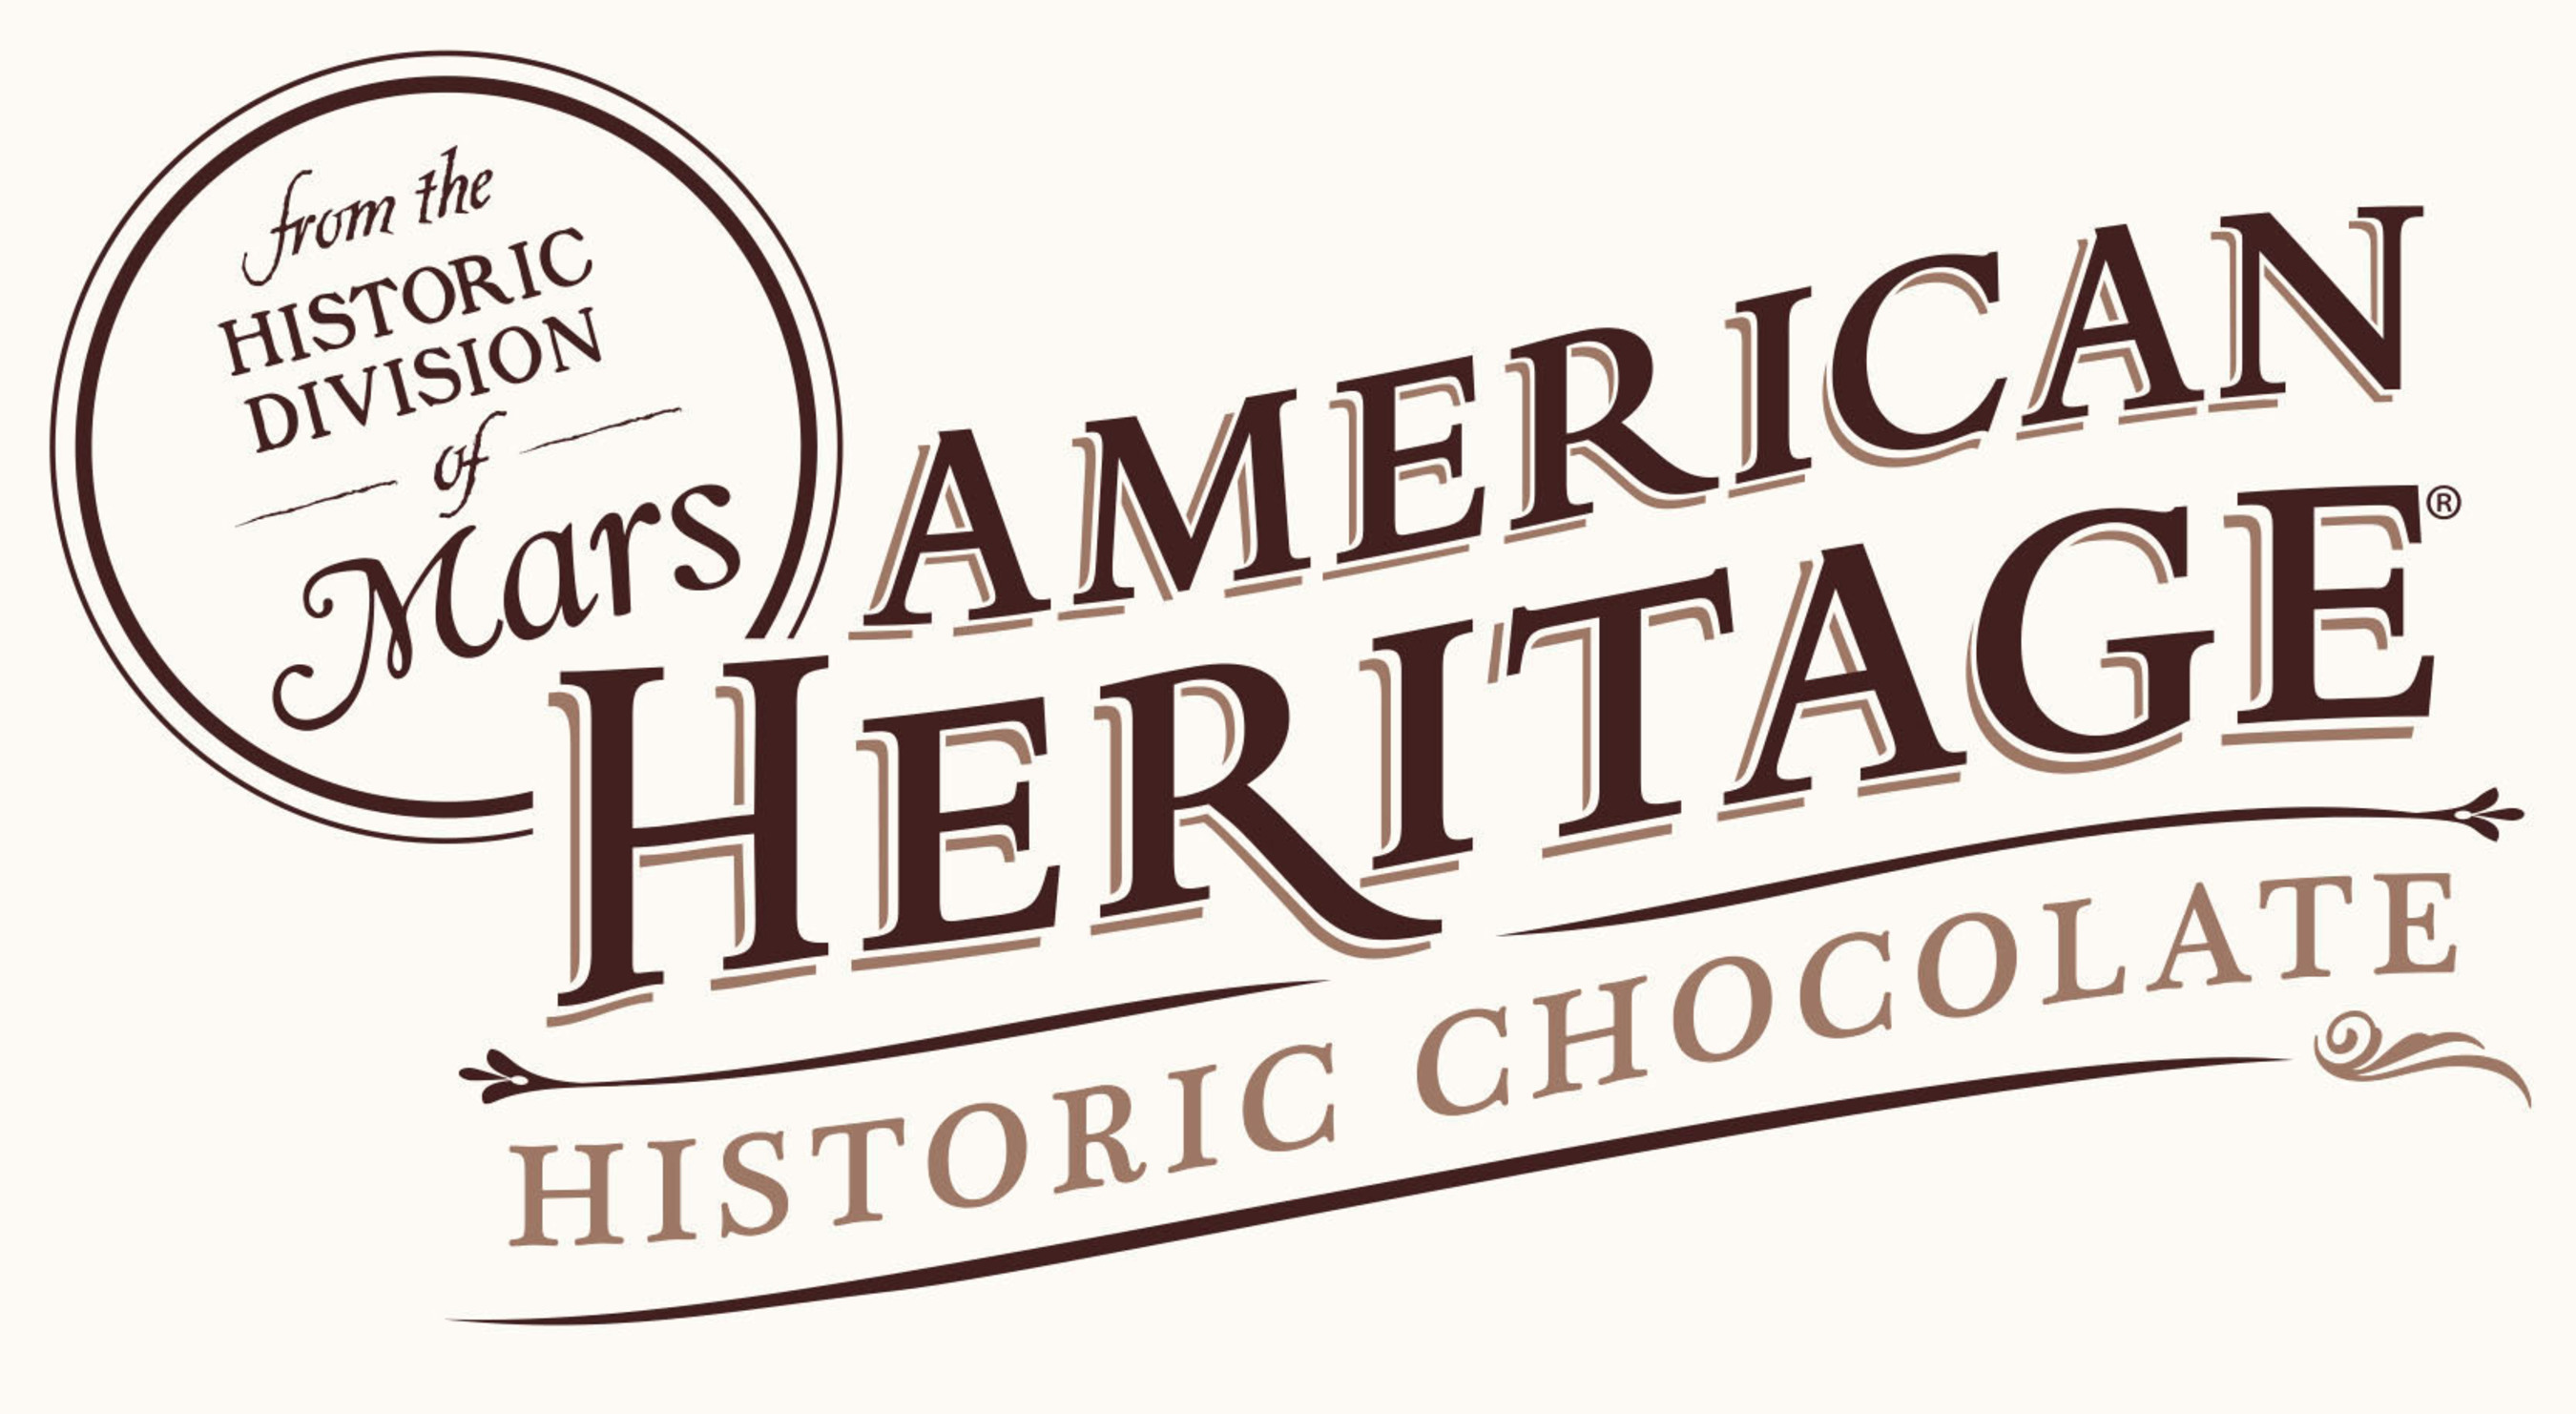 Mars Spurs Chocolate Exploration With Chocolate History Research And Investigative Studies Grant